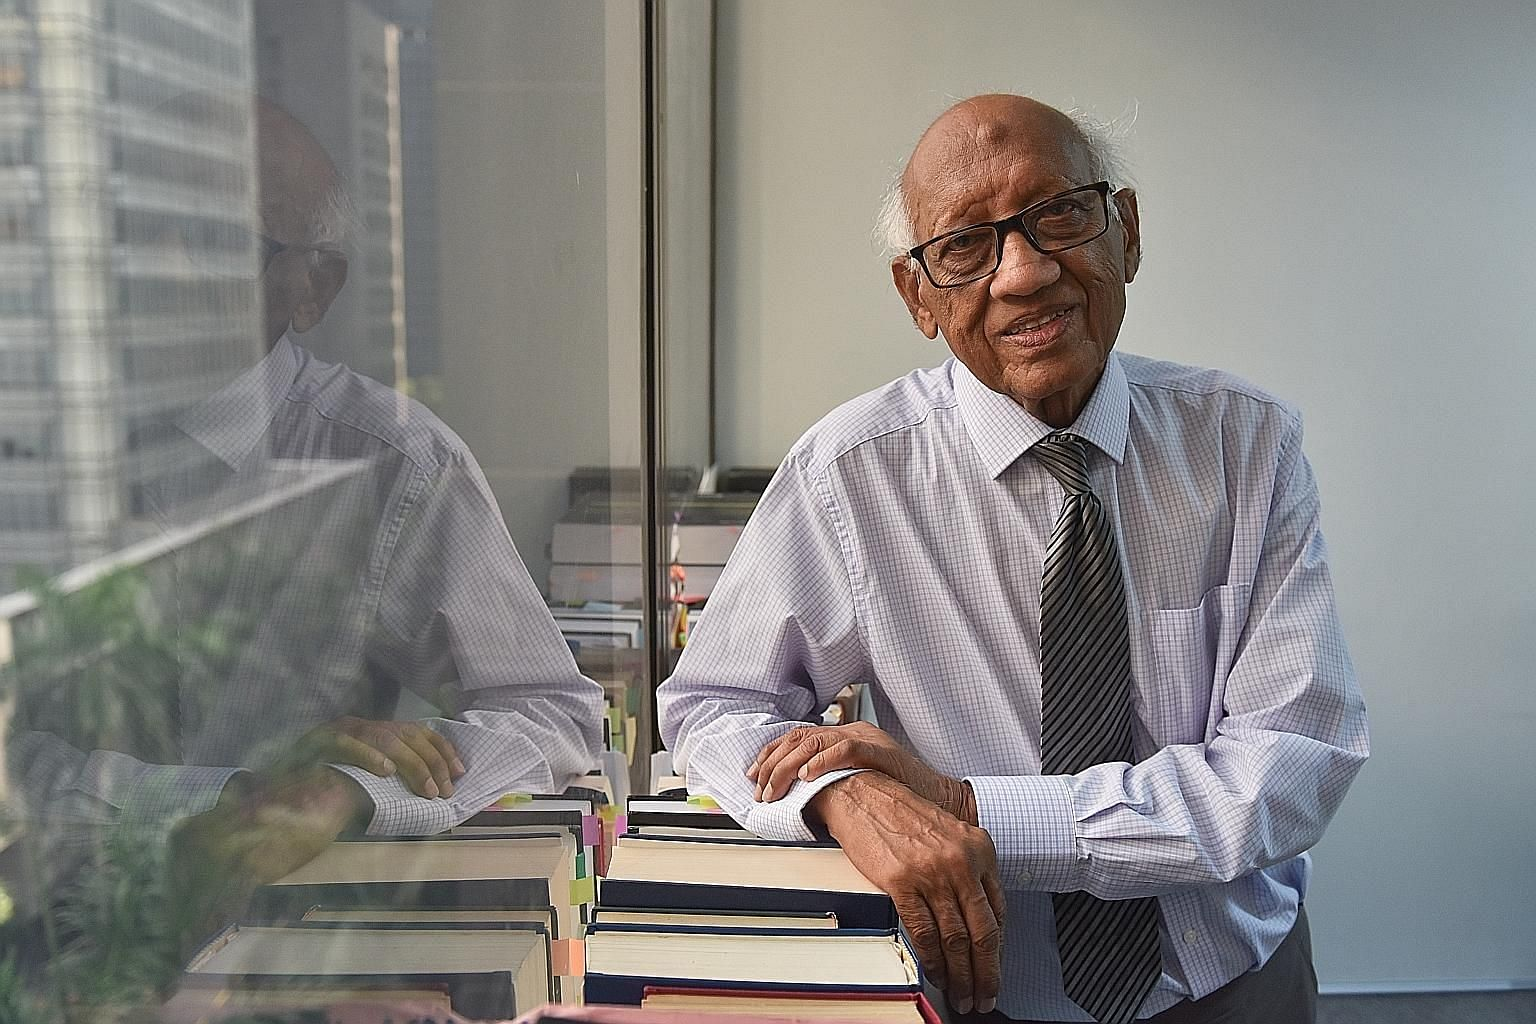 Mr V. Ramakrishnan's successes in civil law included a case pursued in Britain's Privy Council - the highest court of appeal for Singapore cases until 1994. In 2017, he was one of five lawyers singled out for special honour at the Law Society's Golde